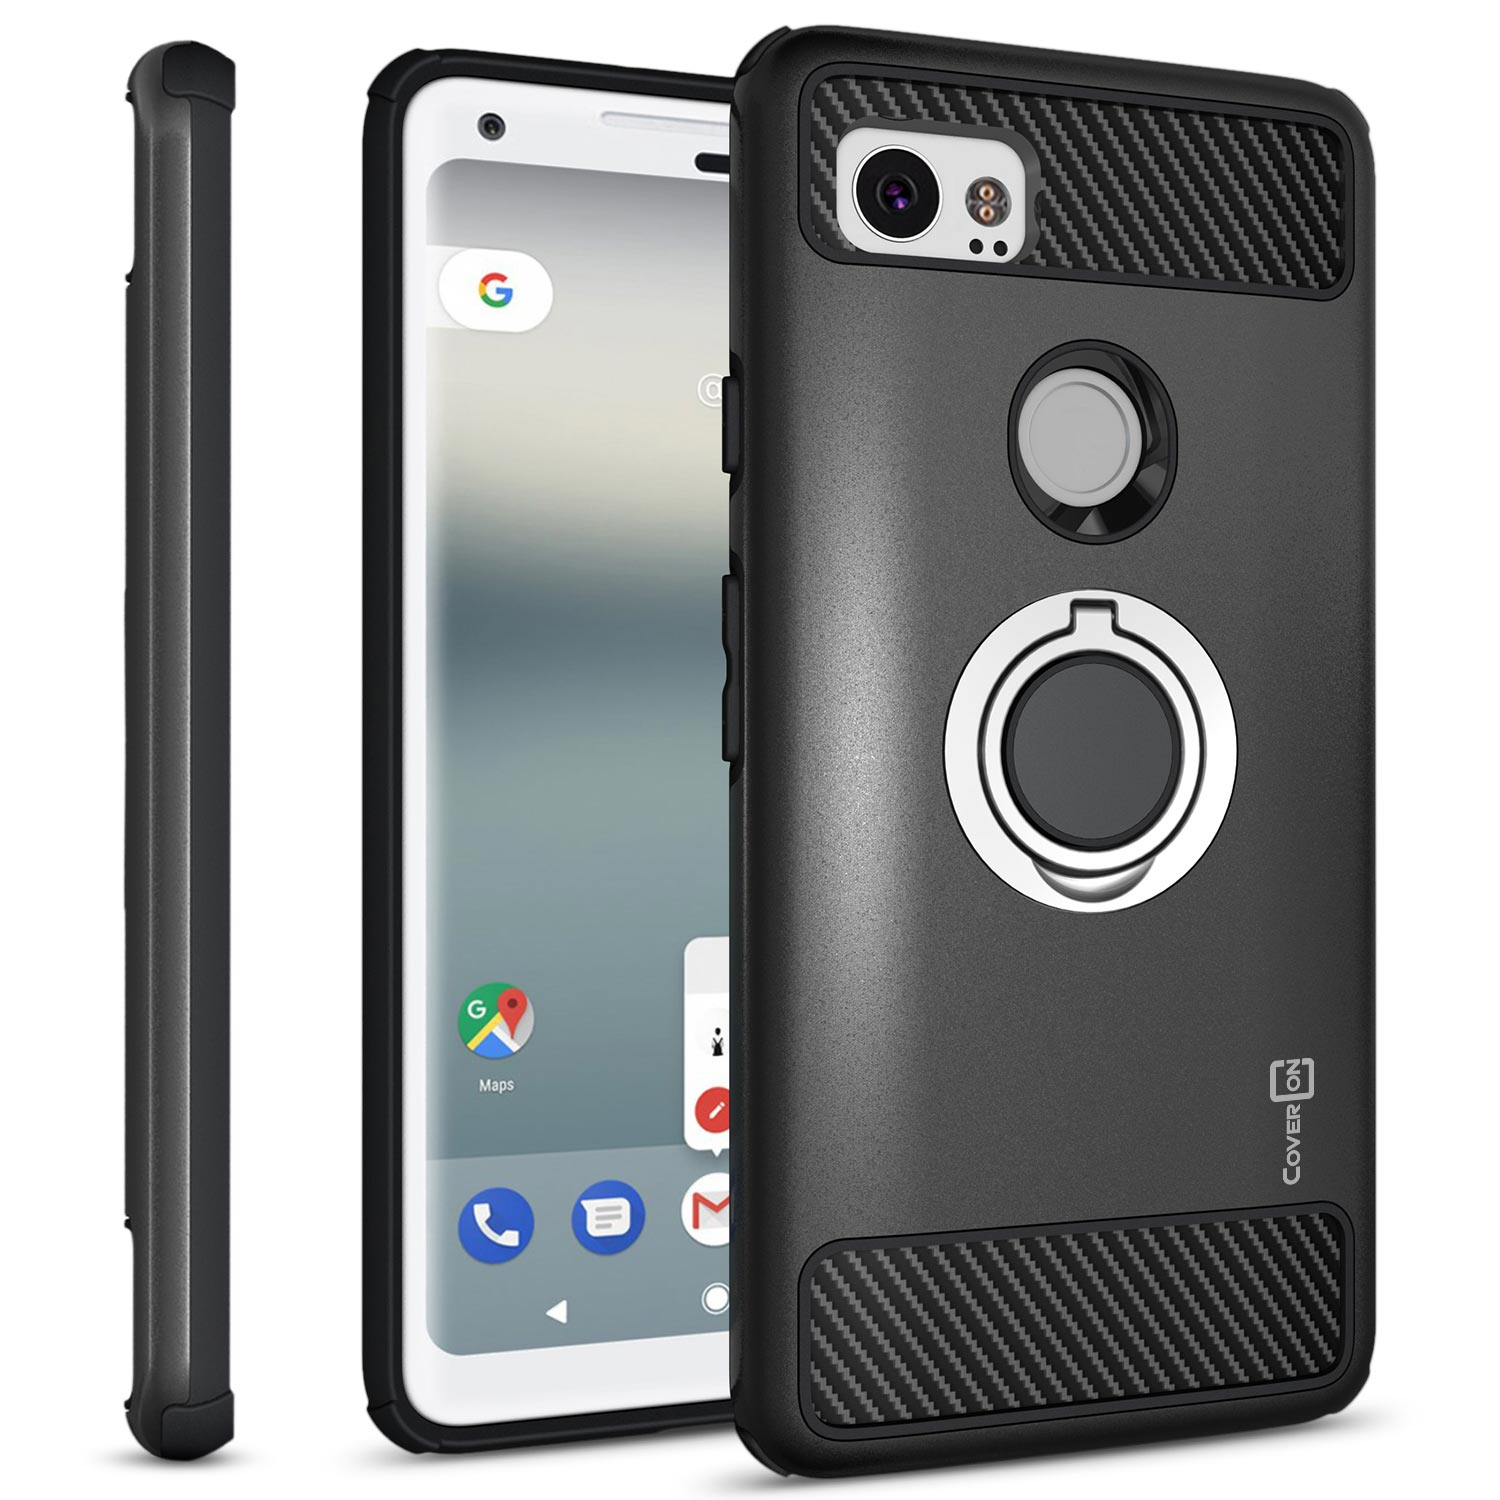 CoverON Google Pixel 2 XL / 2XL Case with Ring Holder, RingCase Series Hybrid Protective Dua Layer Phone Cover